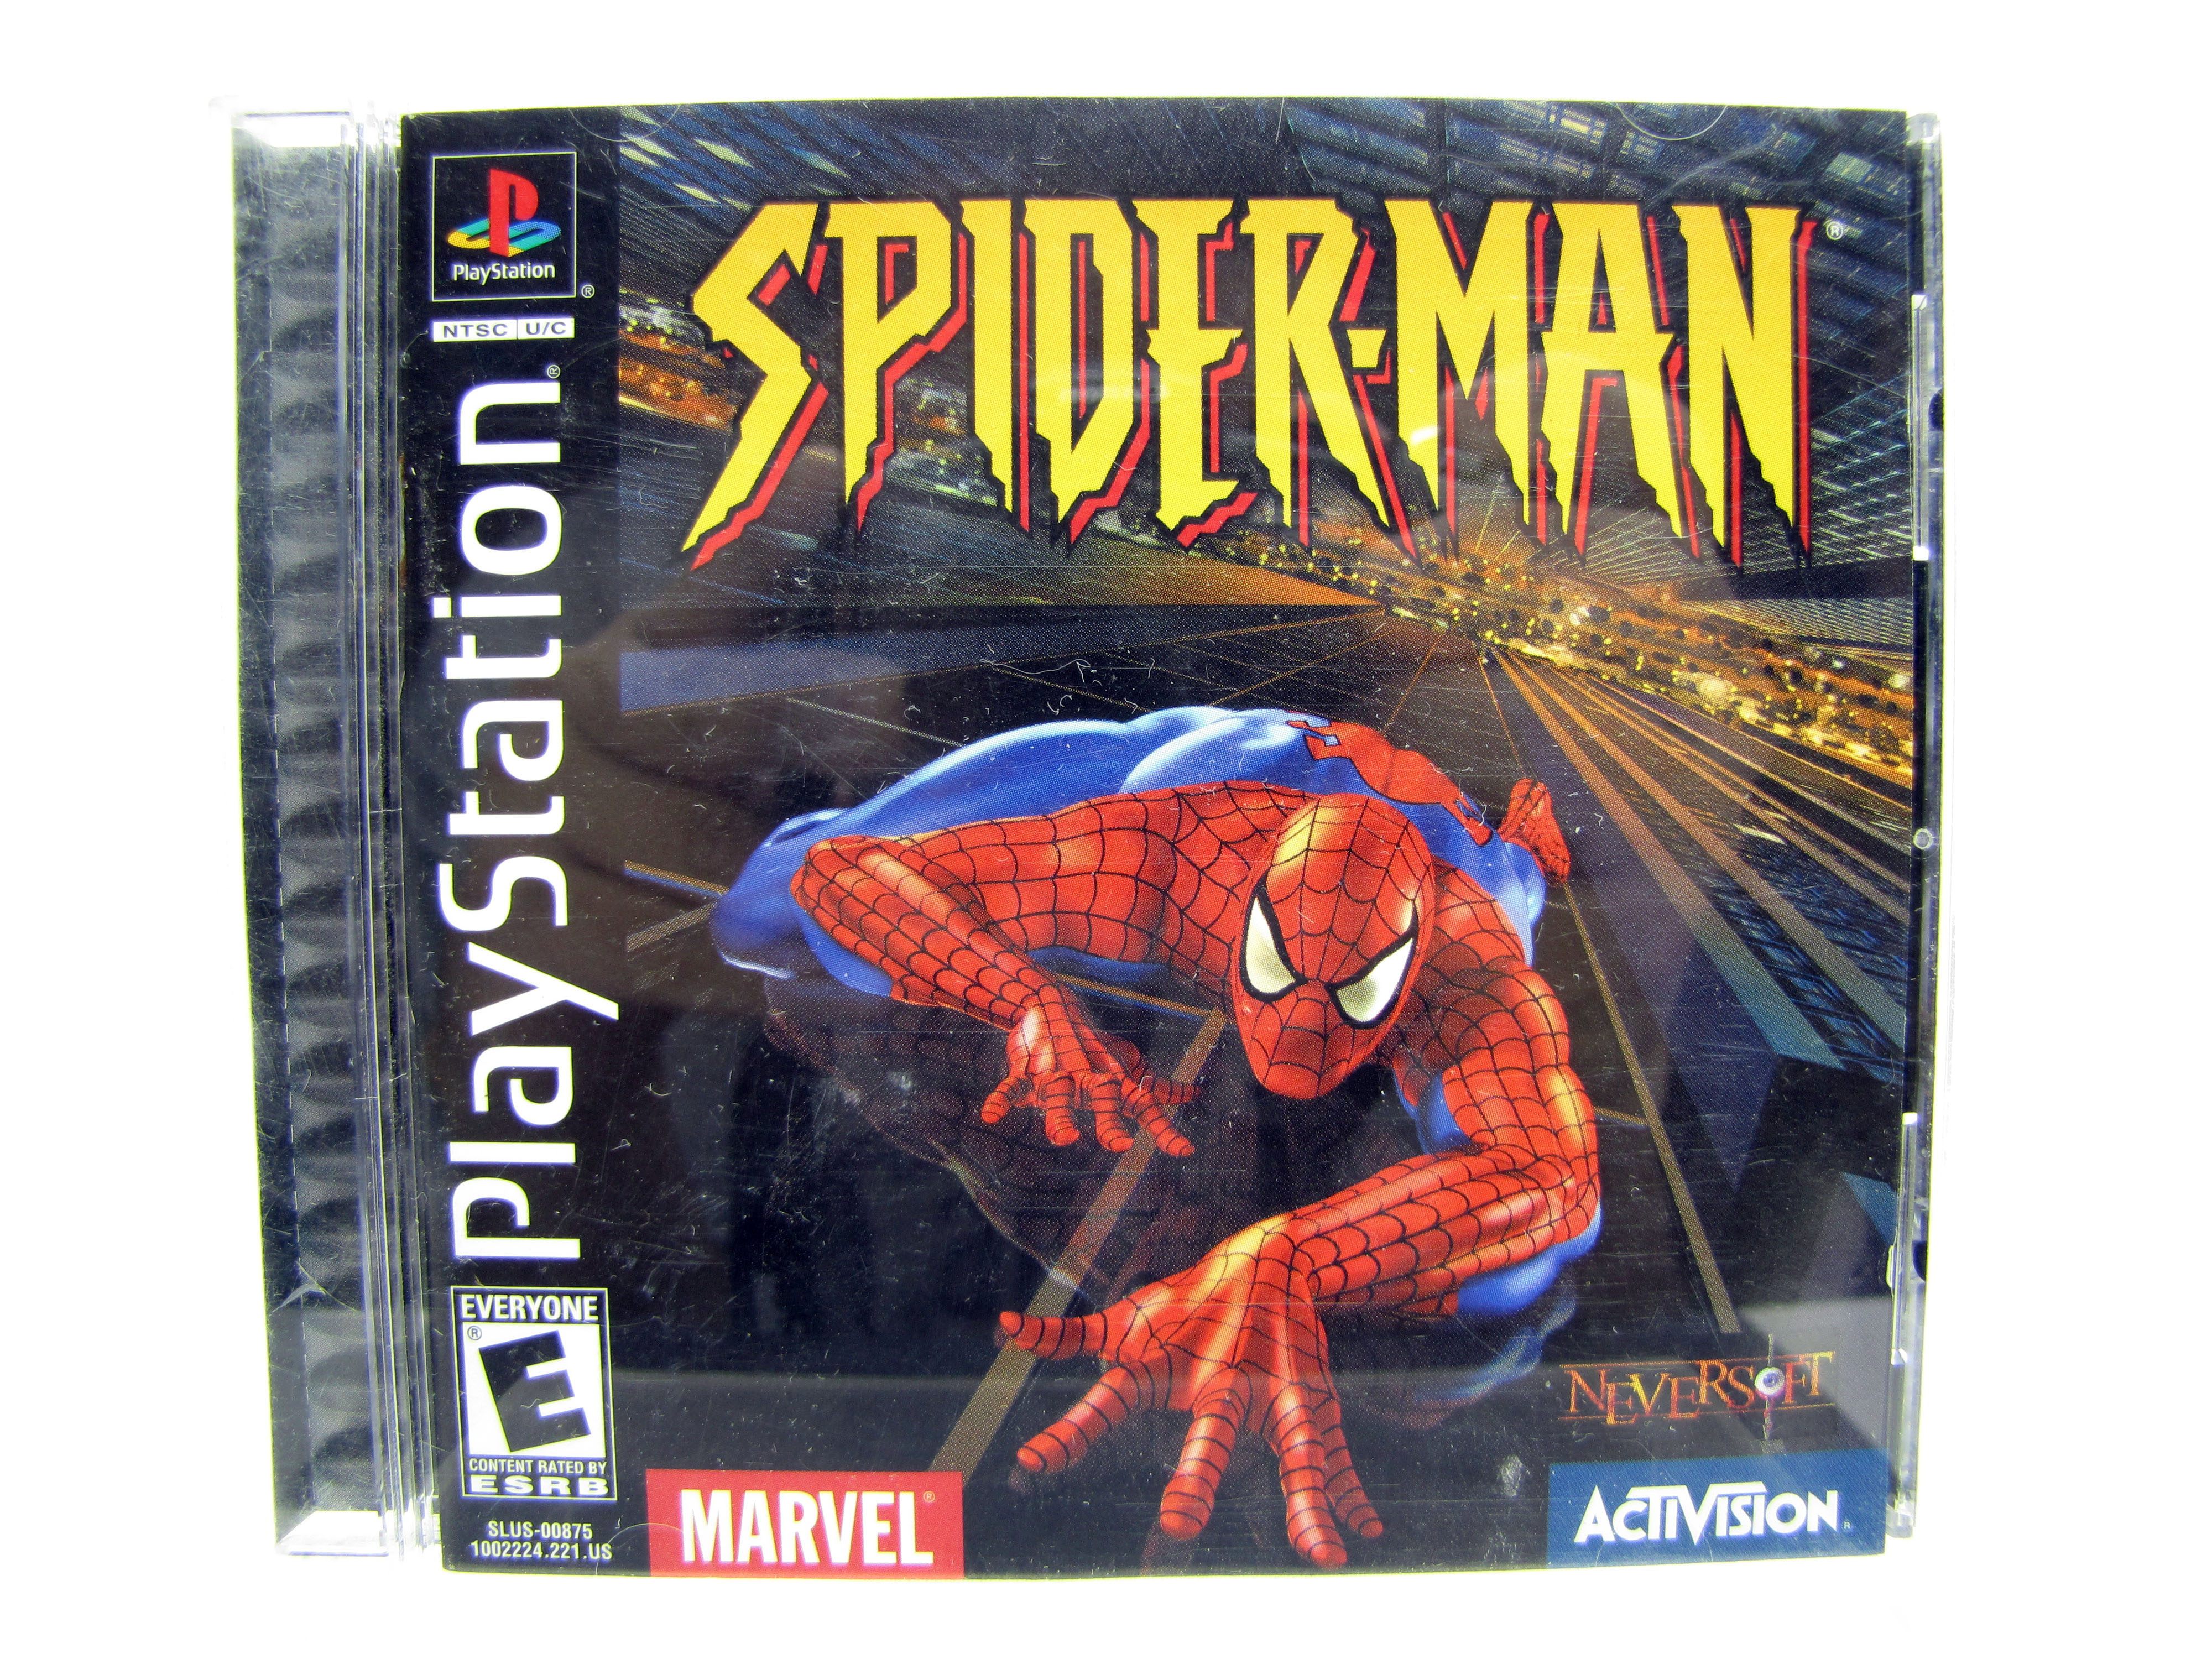 PS1 Spider-Man Complete - 2000